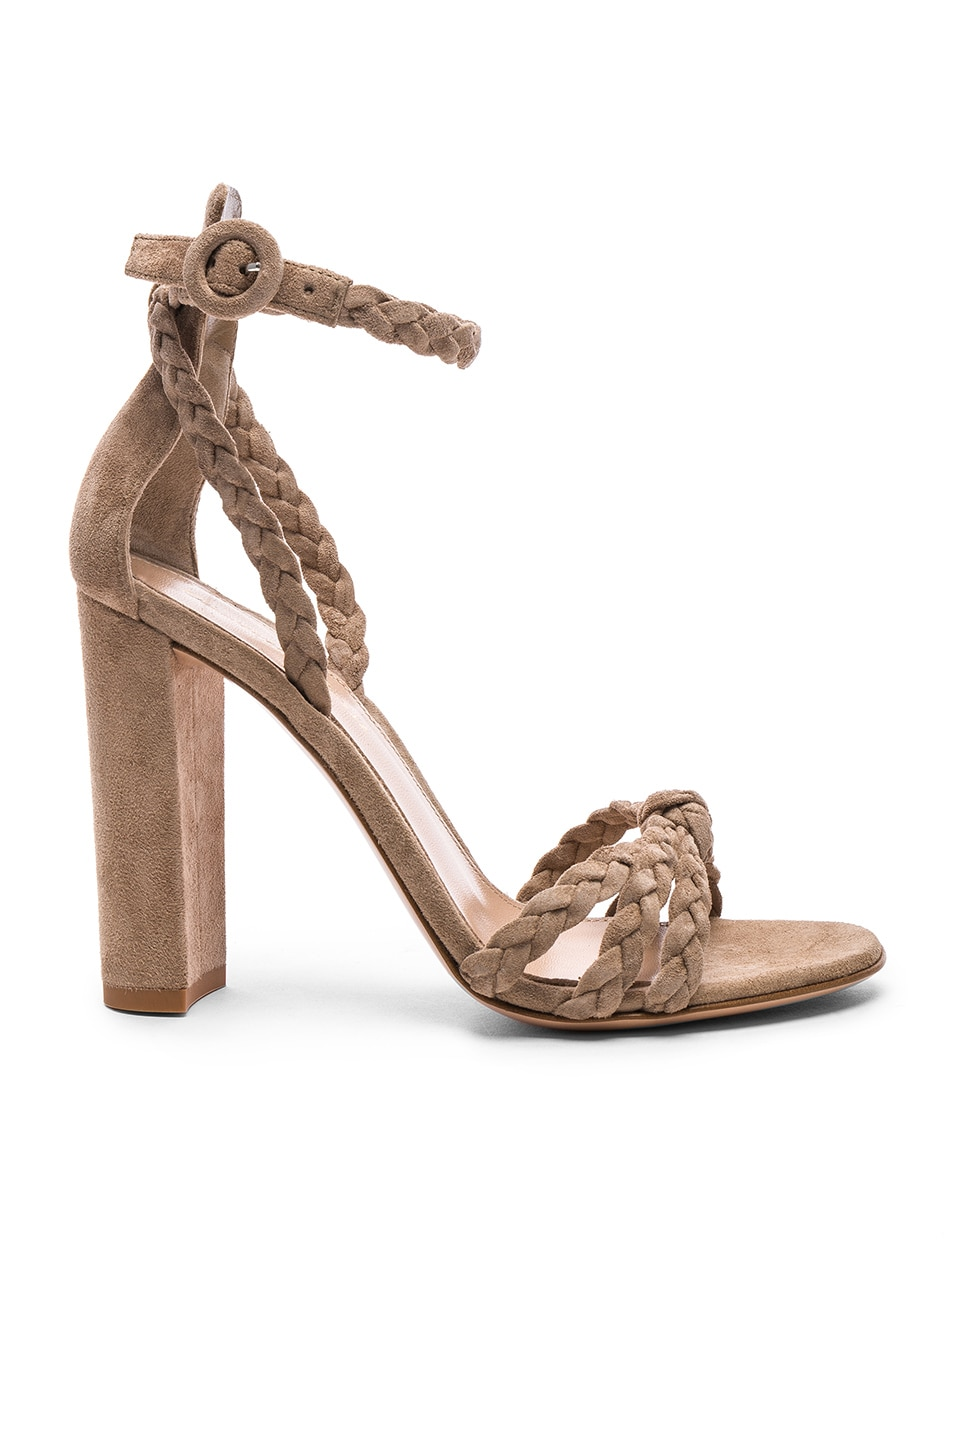 Gianvito Rossi For FWRD Suede Liya Braided Strap Heels in Neutrals. w21zrY